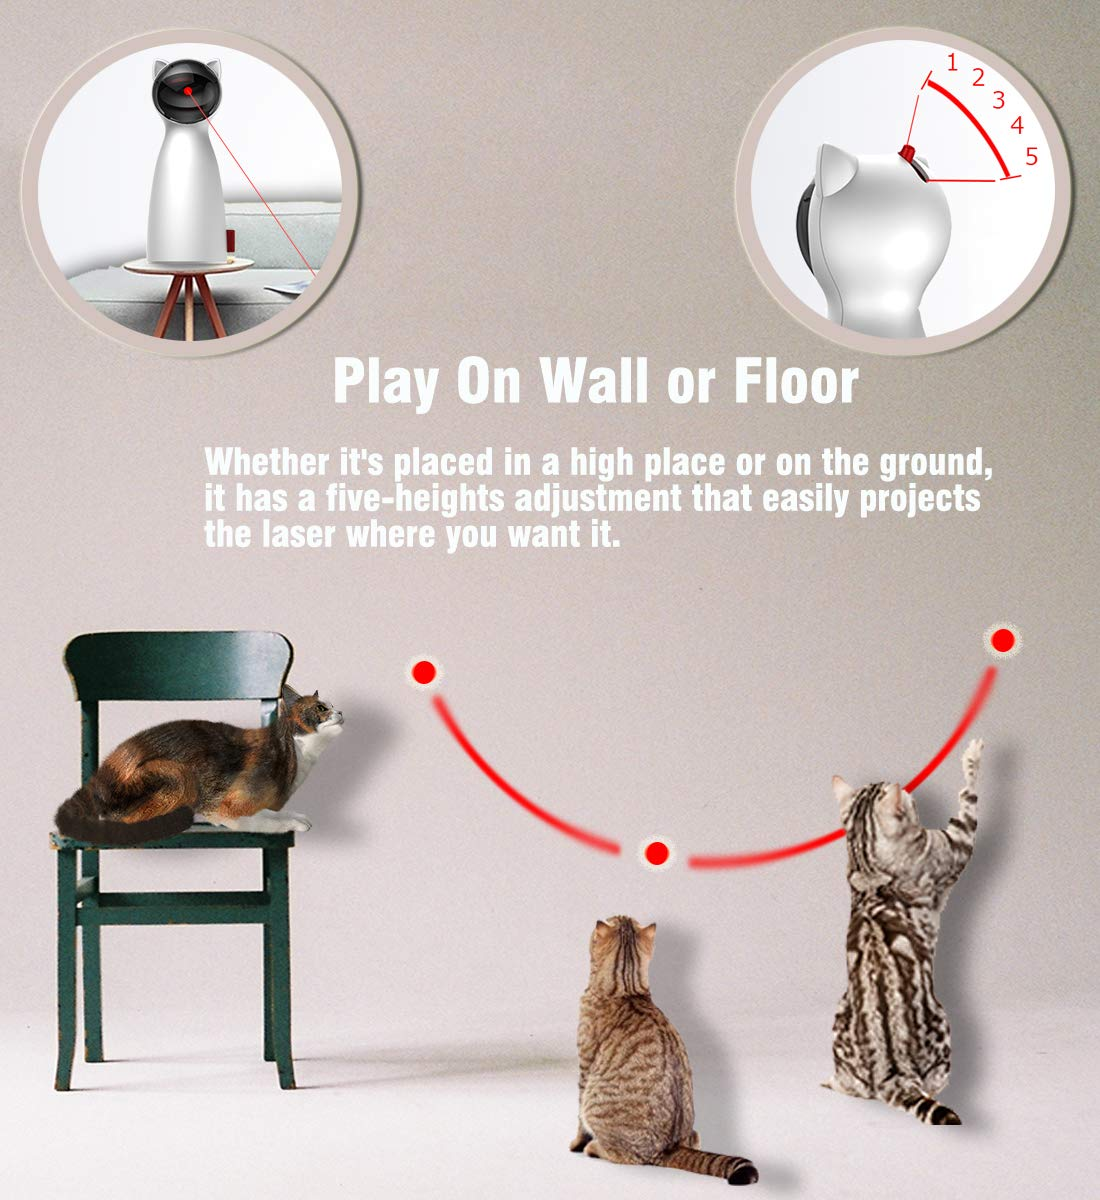 POWERbeast Laser Cat Toys Interactive - Pet Laser Pointer for Cats with Automatic Rotating,Auto Shutdown/Startup for Catch and Training,5 Adjustable Rotating Height/Range,Cat Exercise Toys